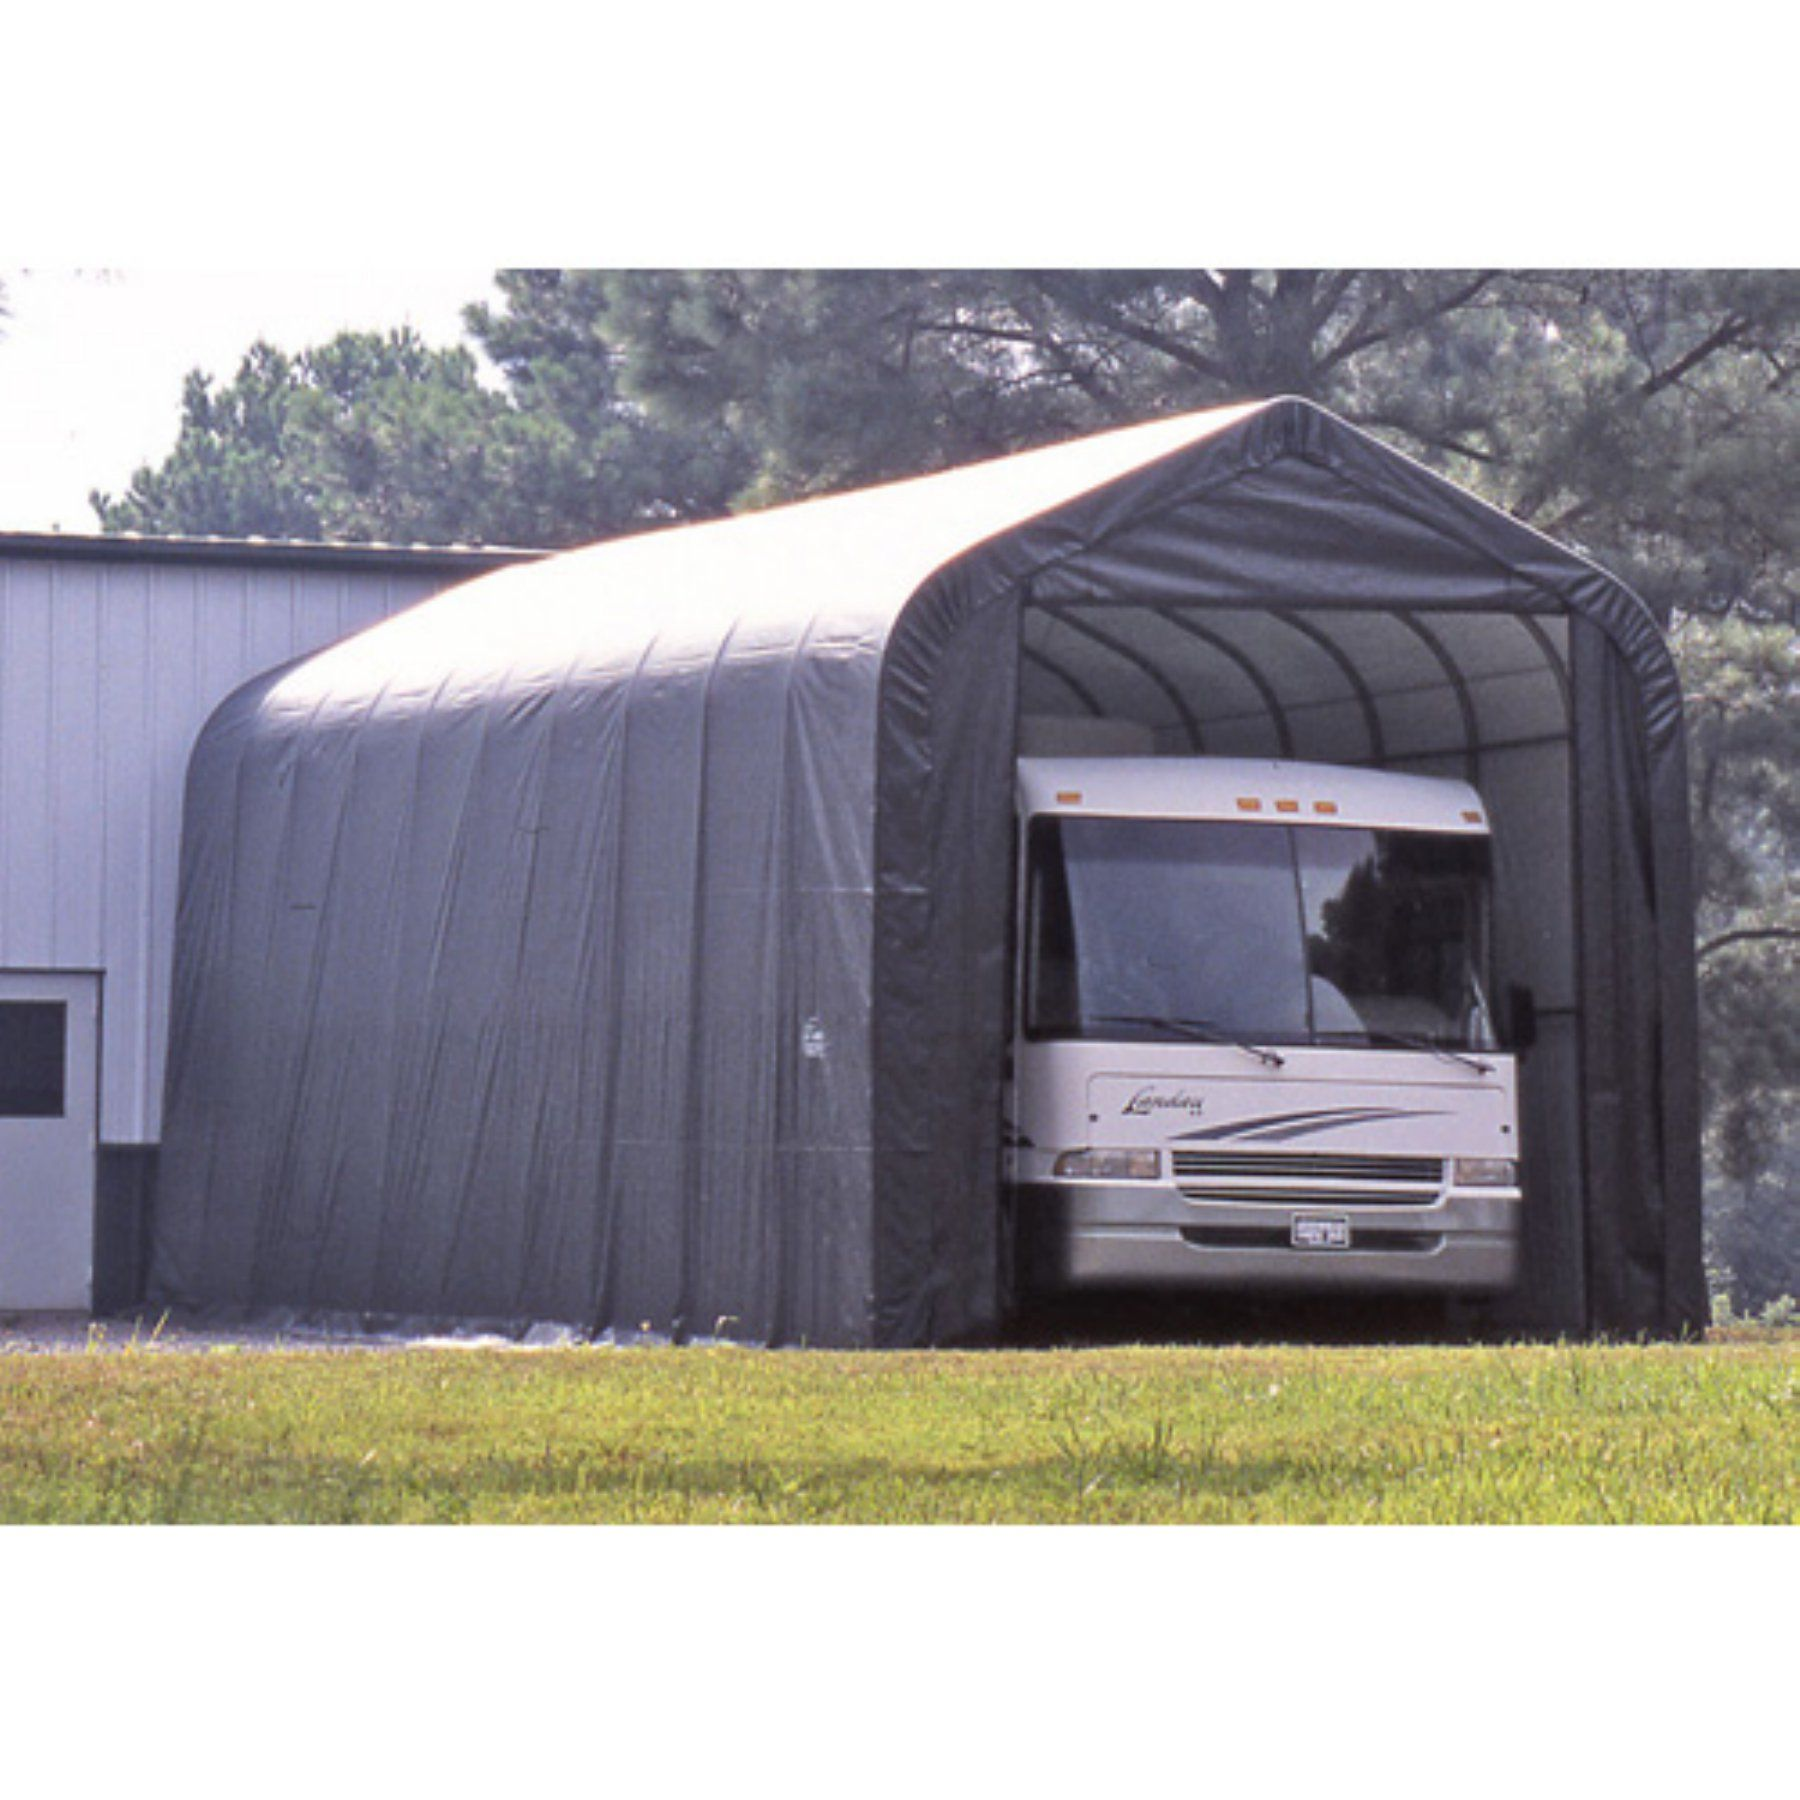 Harbor Freight Carport Warranty - Carports Garages